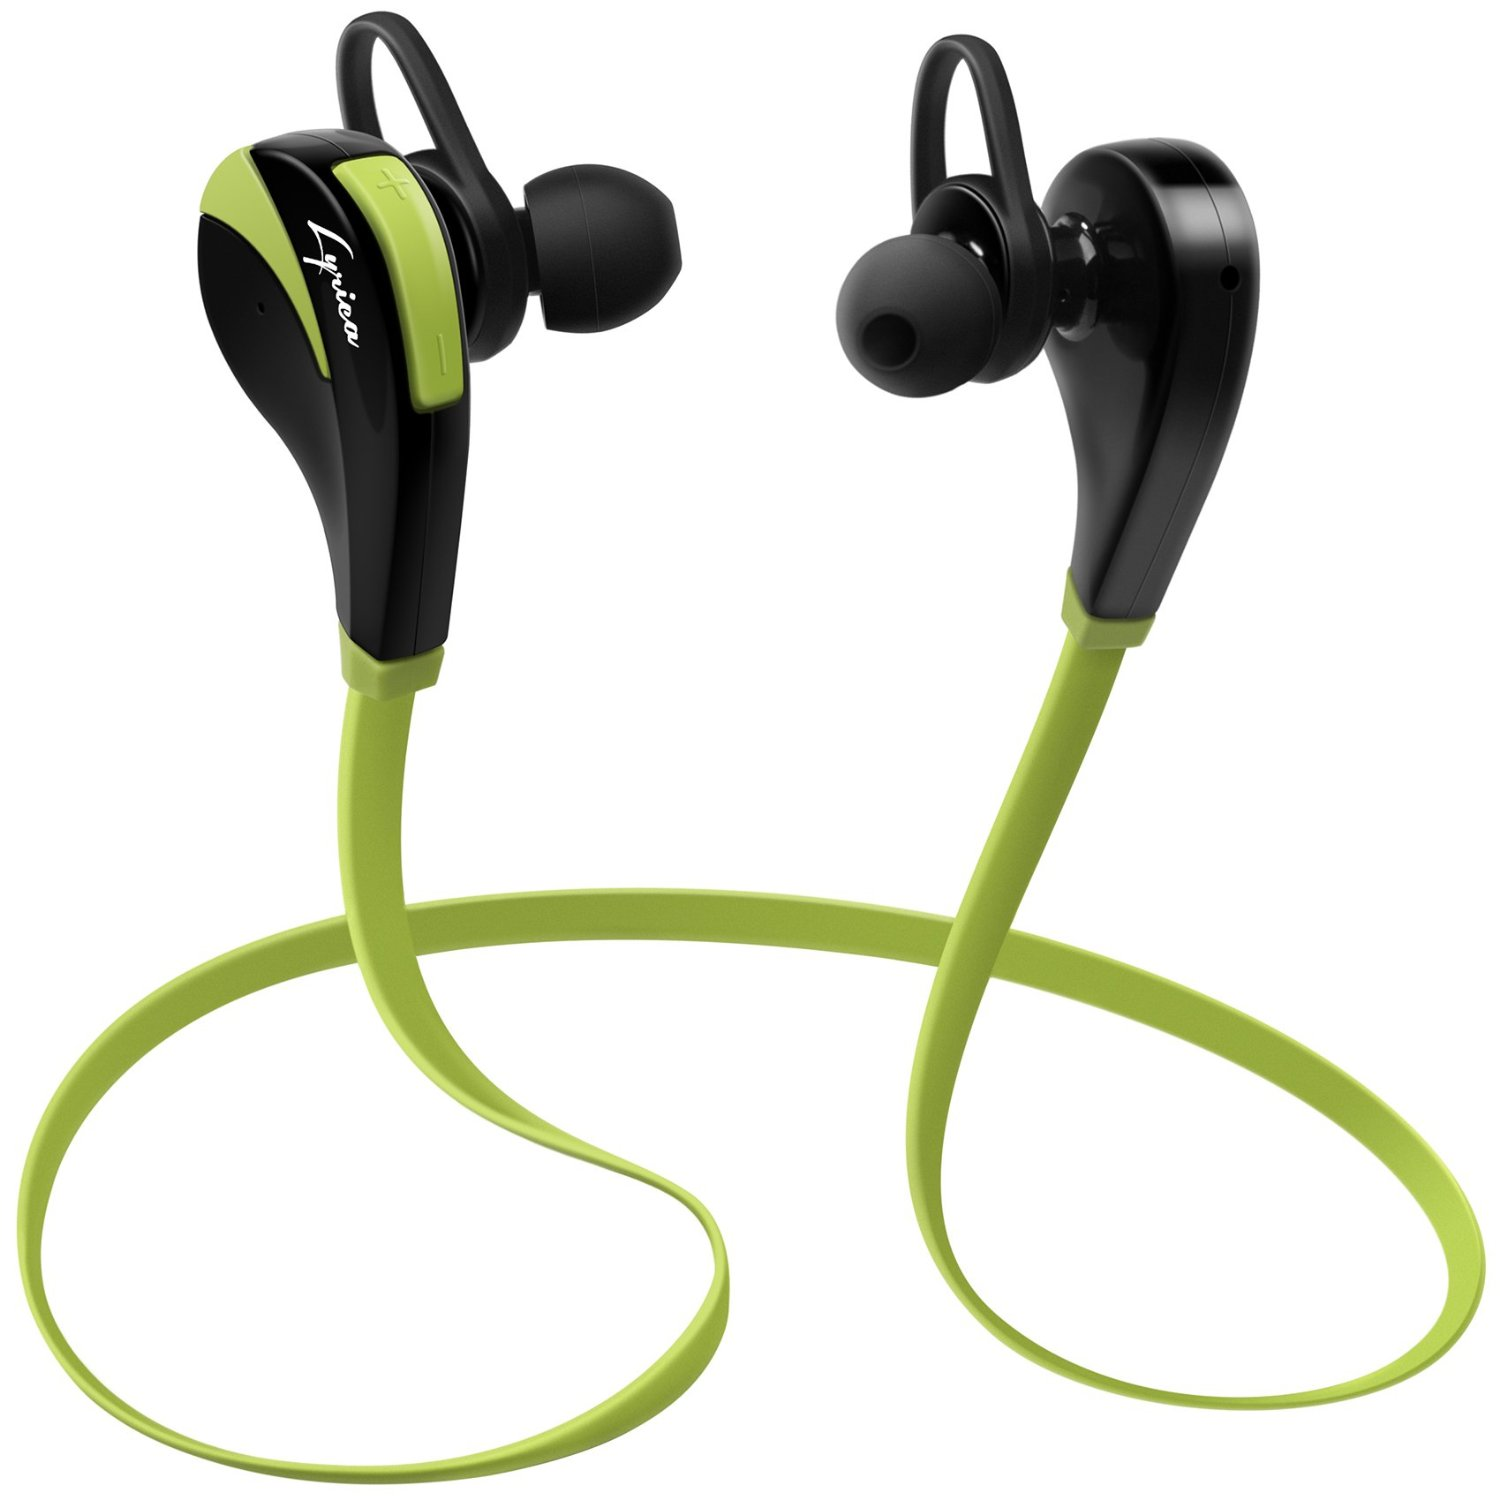 Lyrica Wireless Bluetooth Headphones with Microphone Integrated - Noise Cancellation - In Ear Earbuds for iPad, iPhone, Android, Galaxy & Other Mobile Devices - Premium Sound - Perfect Earphones for Sports & Gym - Hands-free (Green)